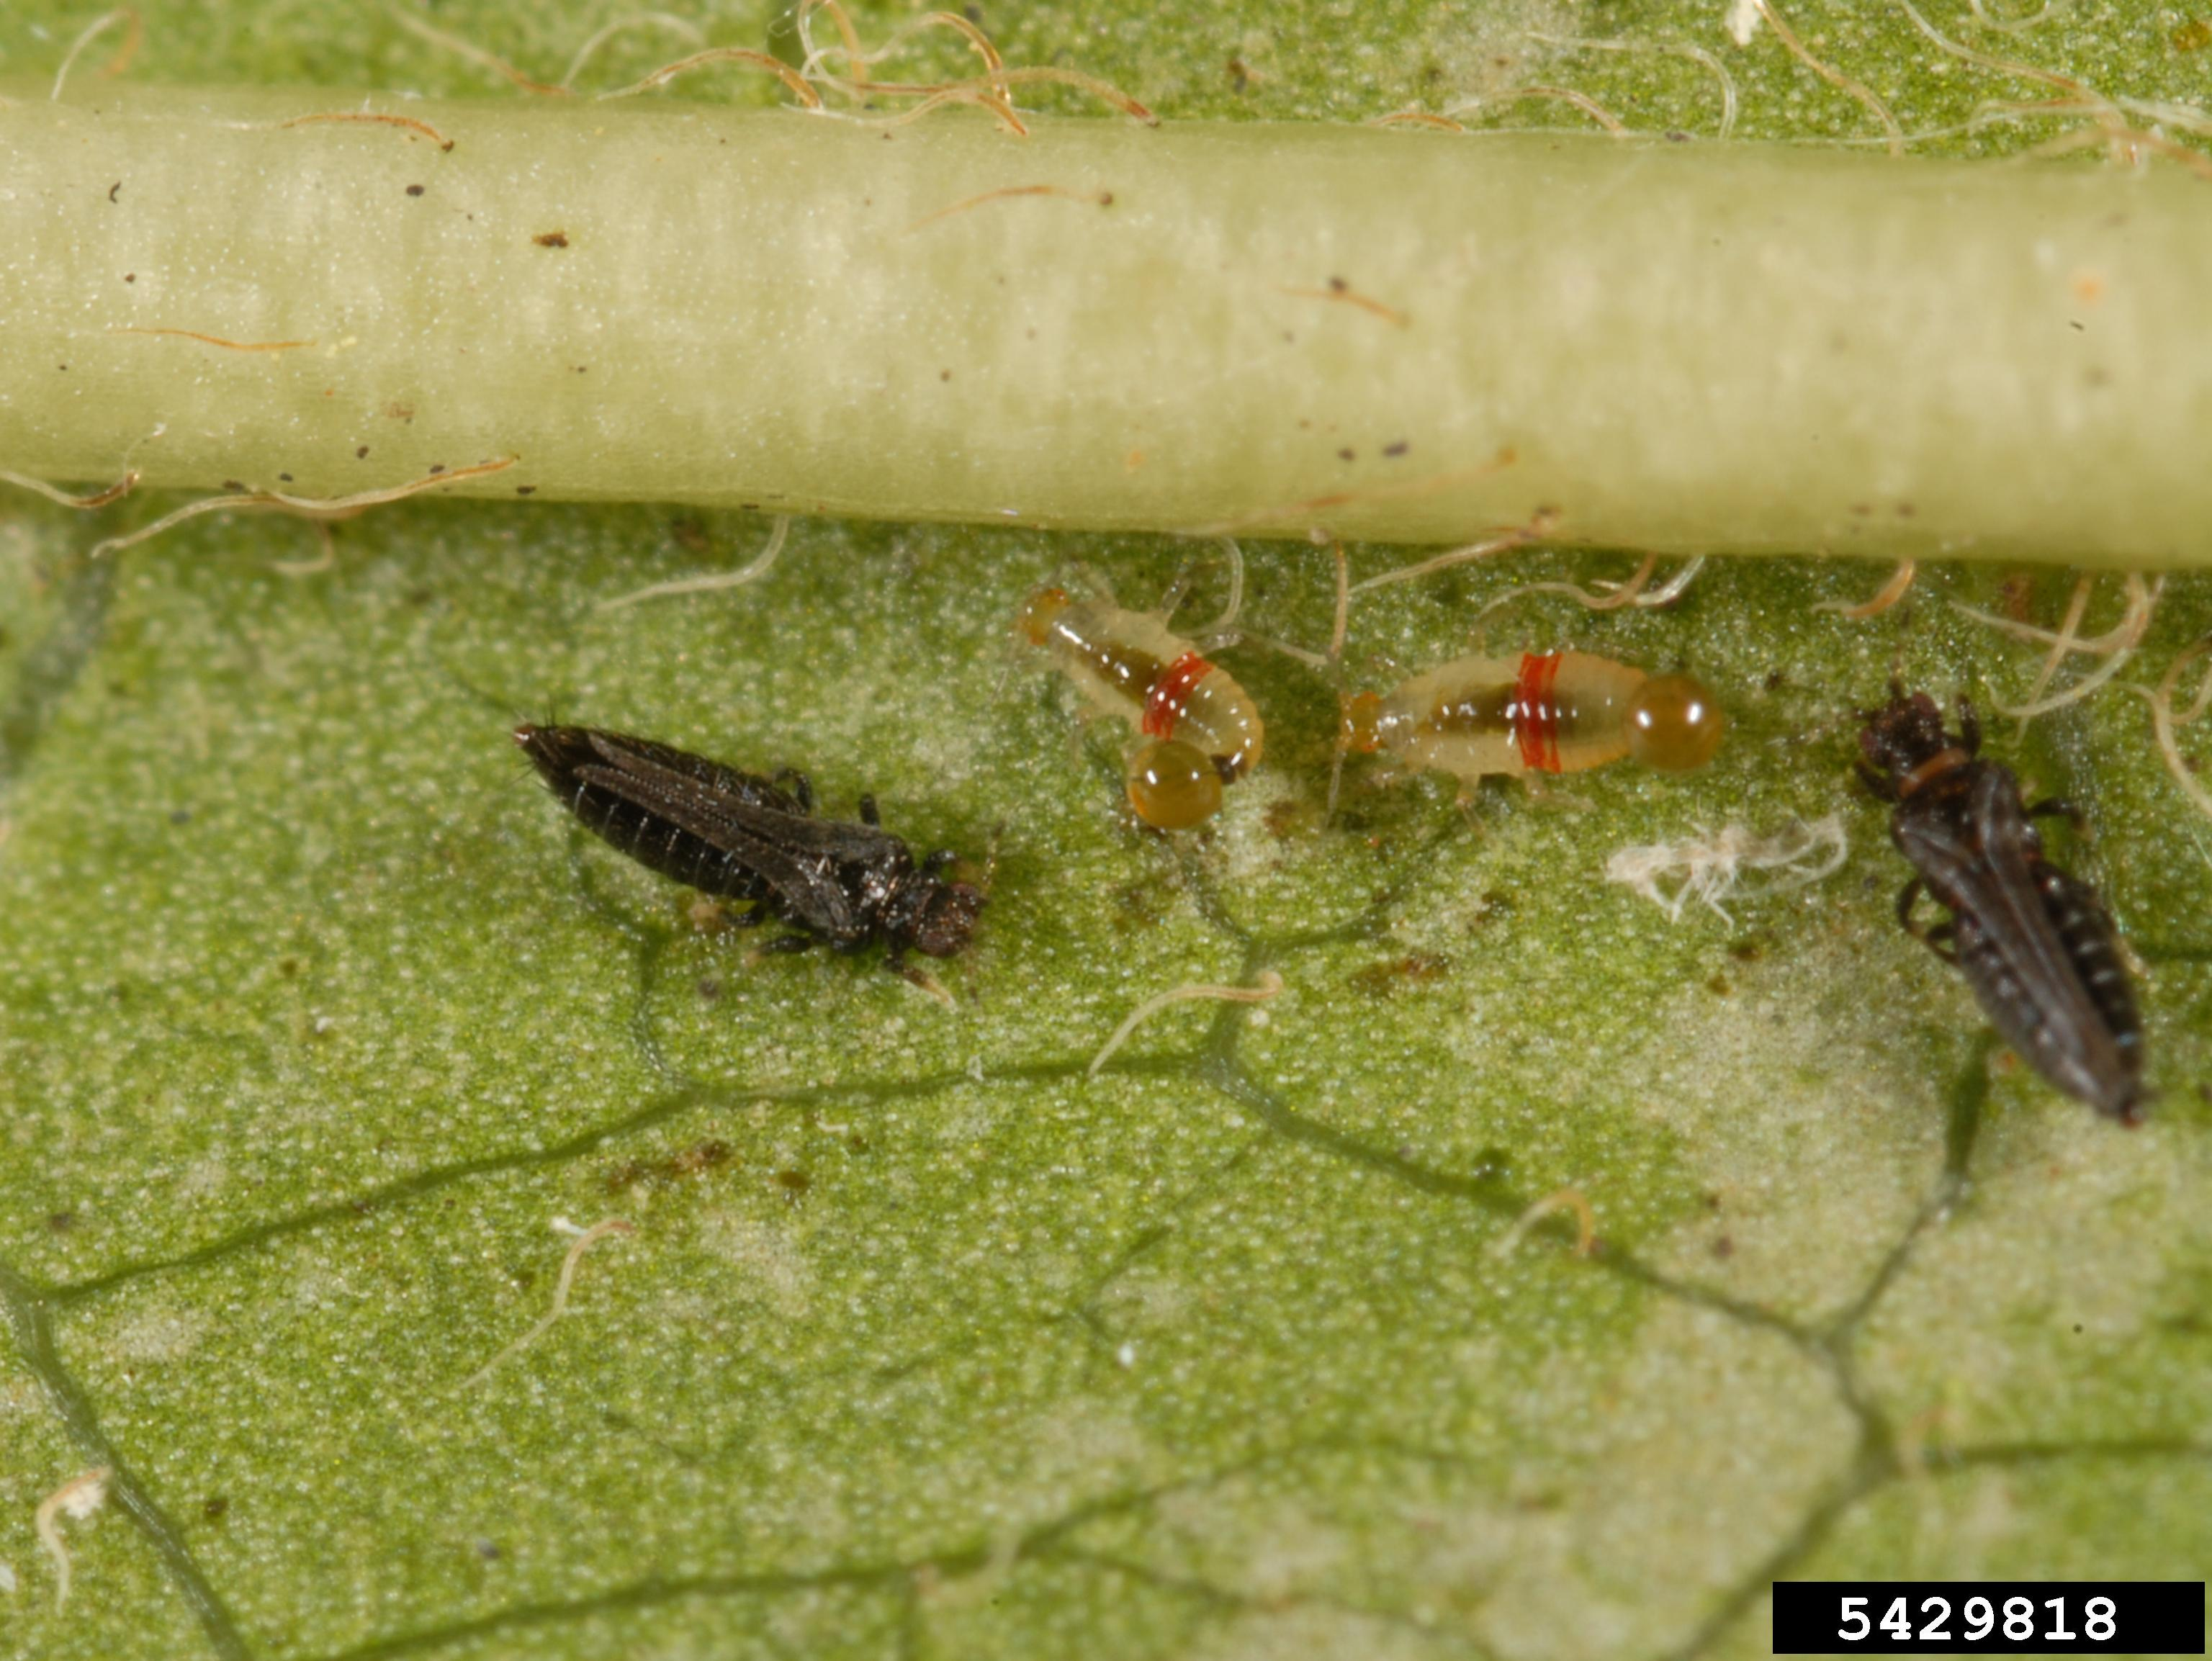 Red banded thrips